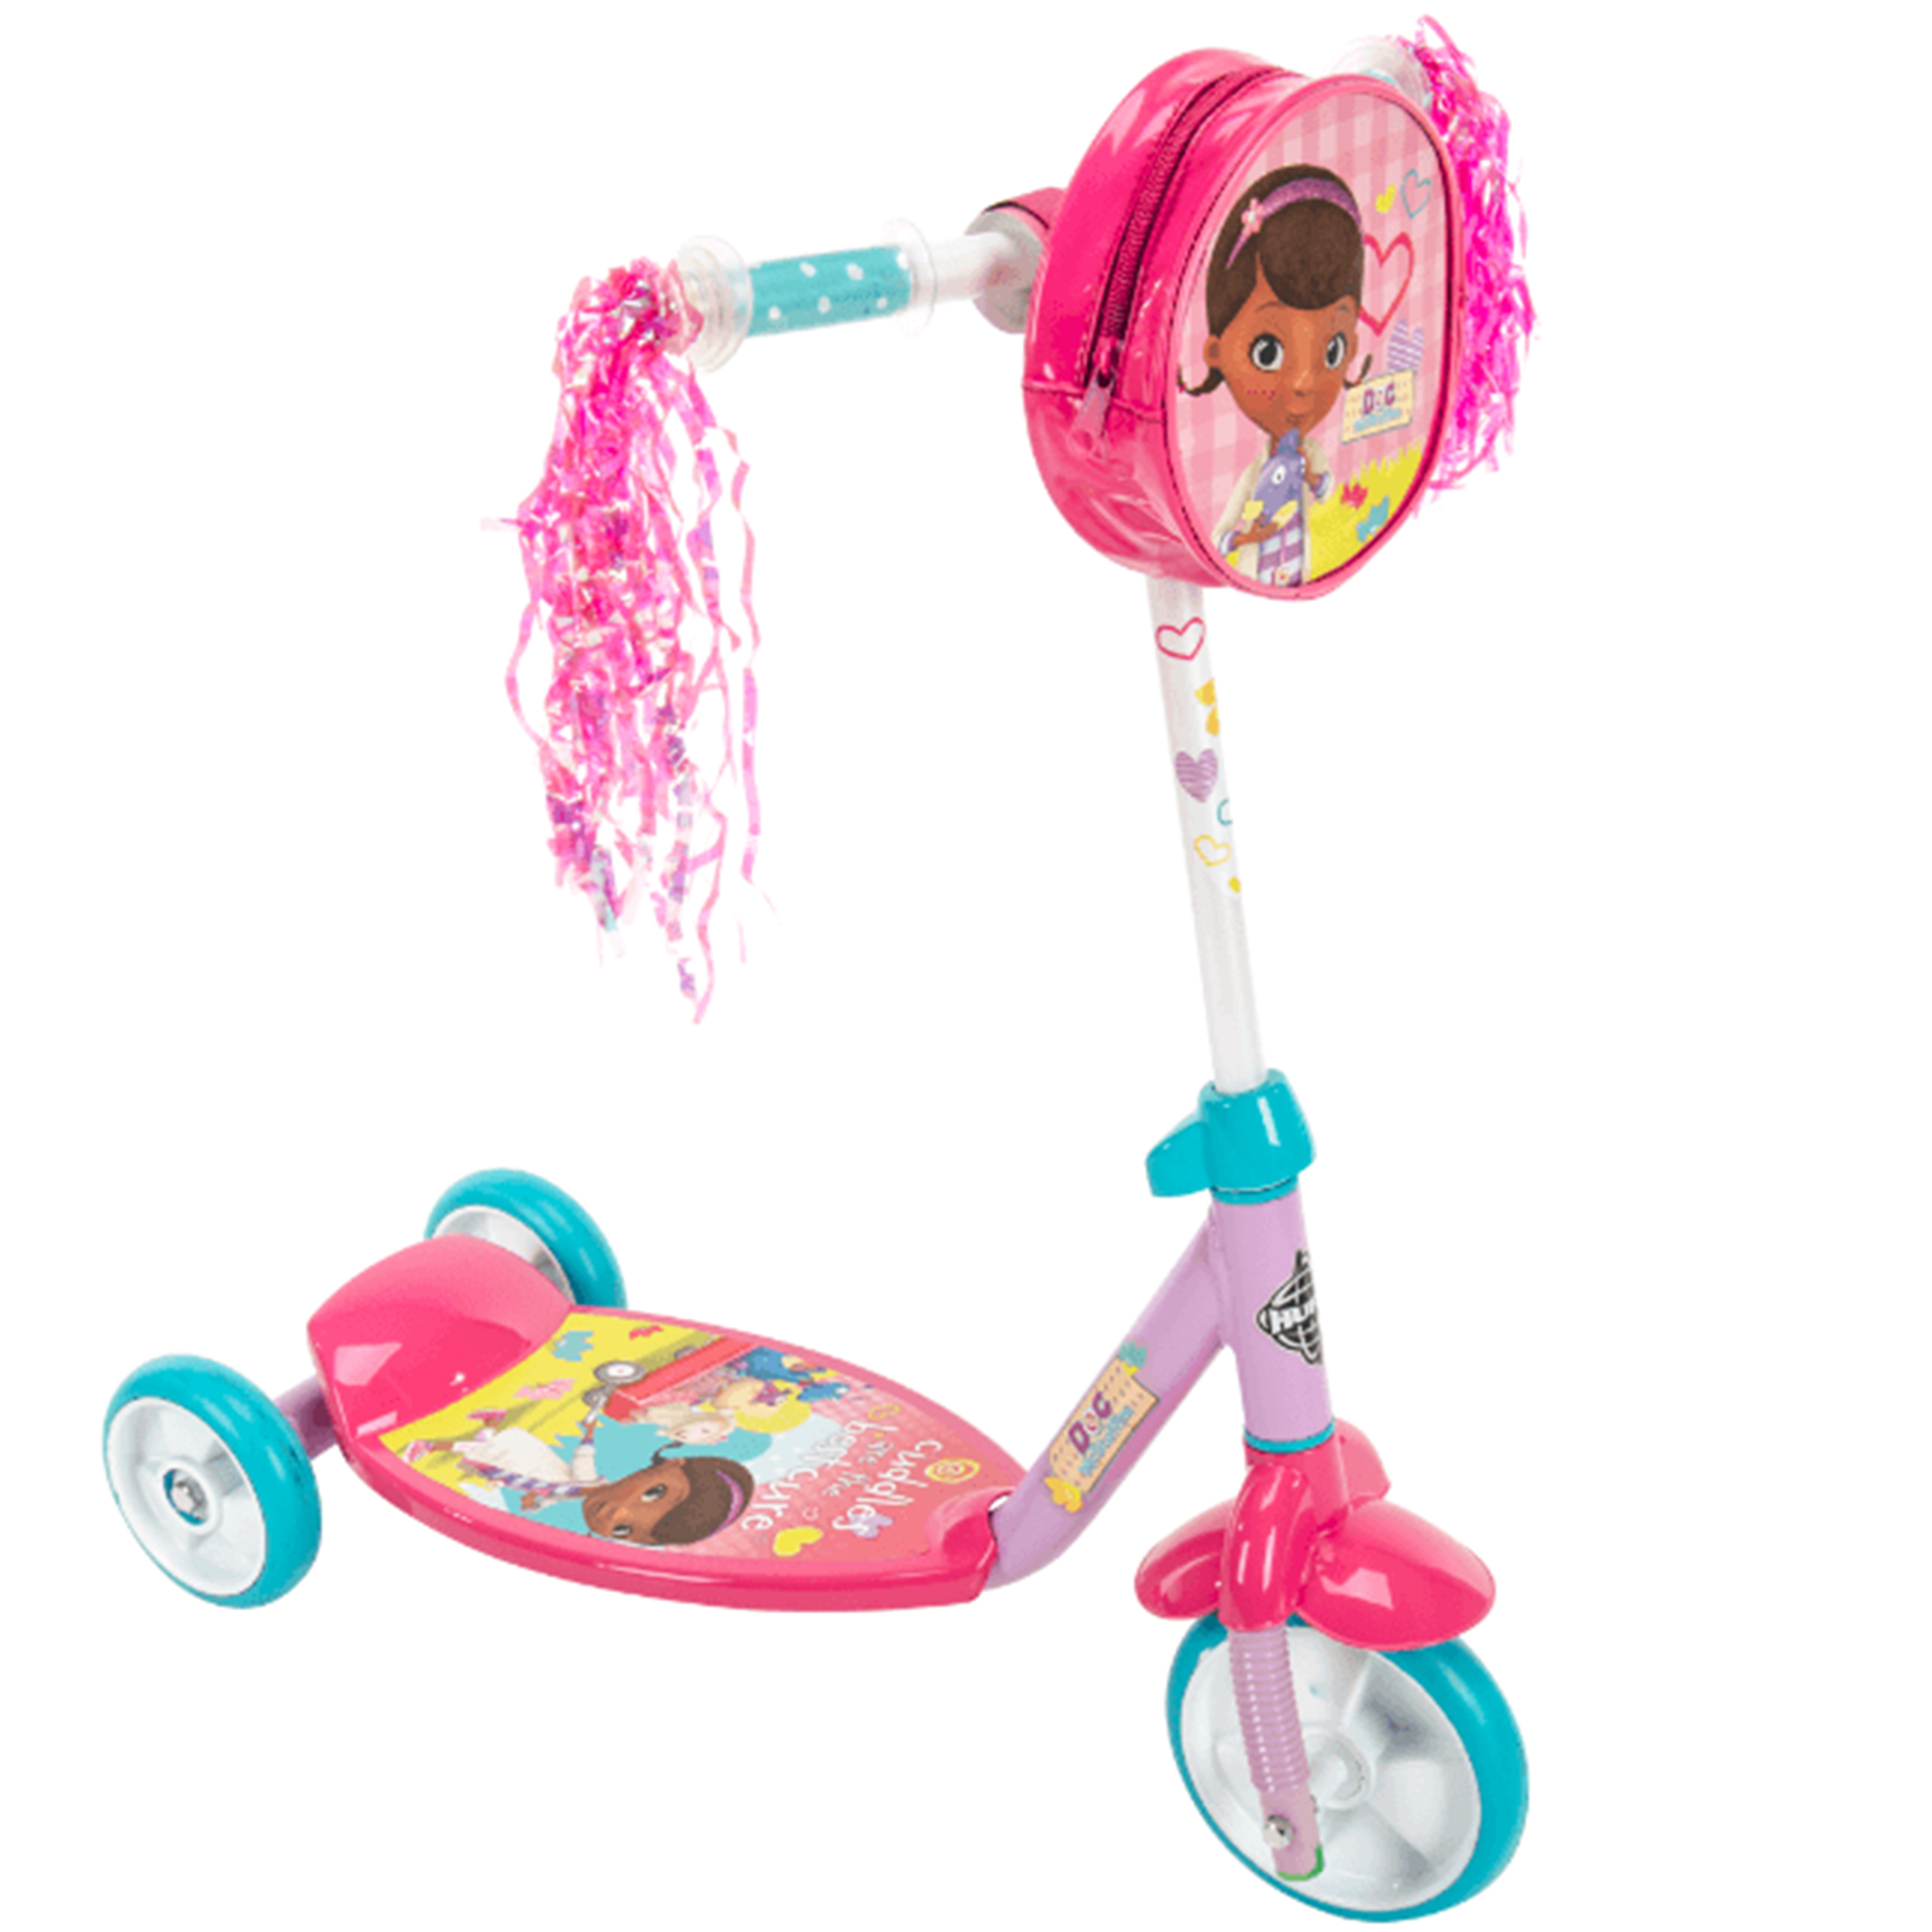 Disney Doc McStuffins Preschool Girls' 3-Wheel Scooter, by Huffy by Huffy